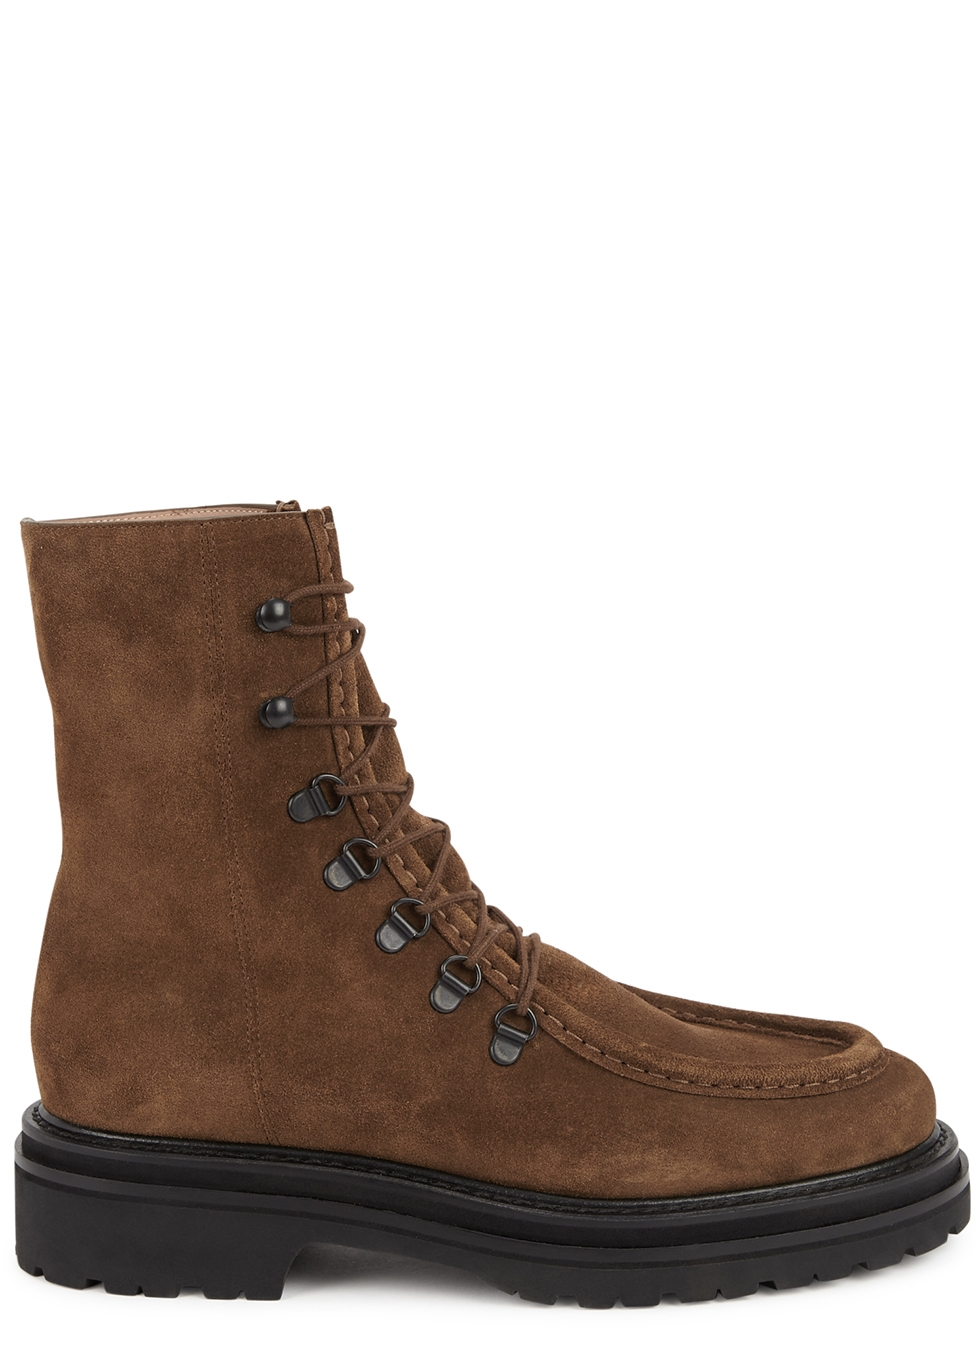 College brown suede ankle boots